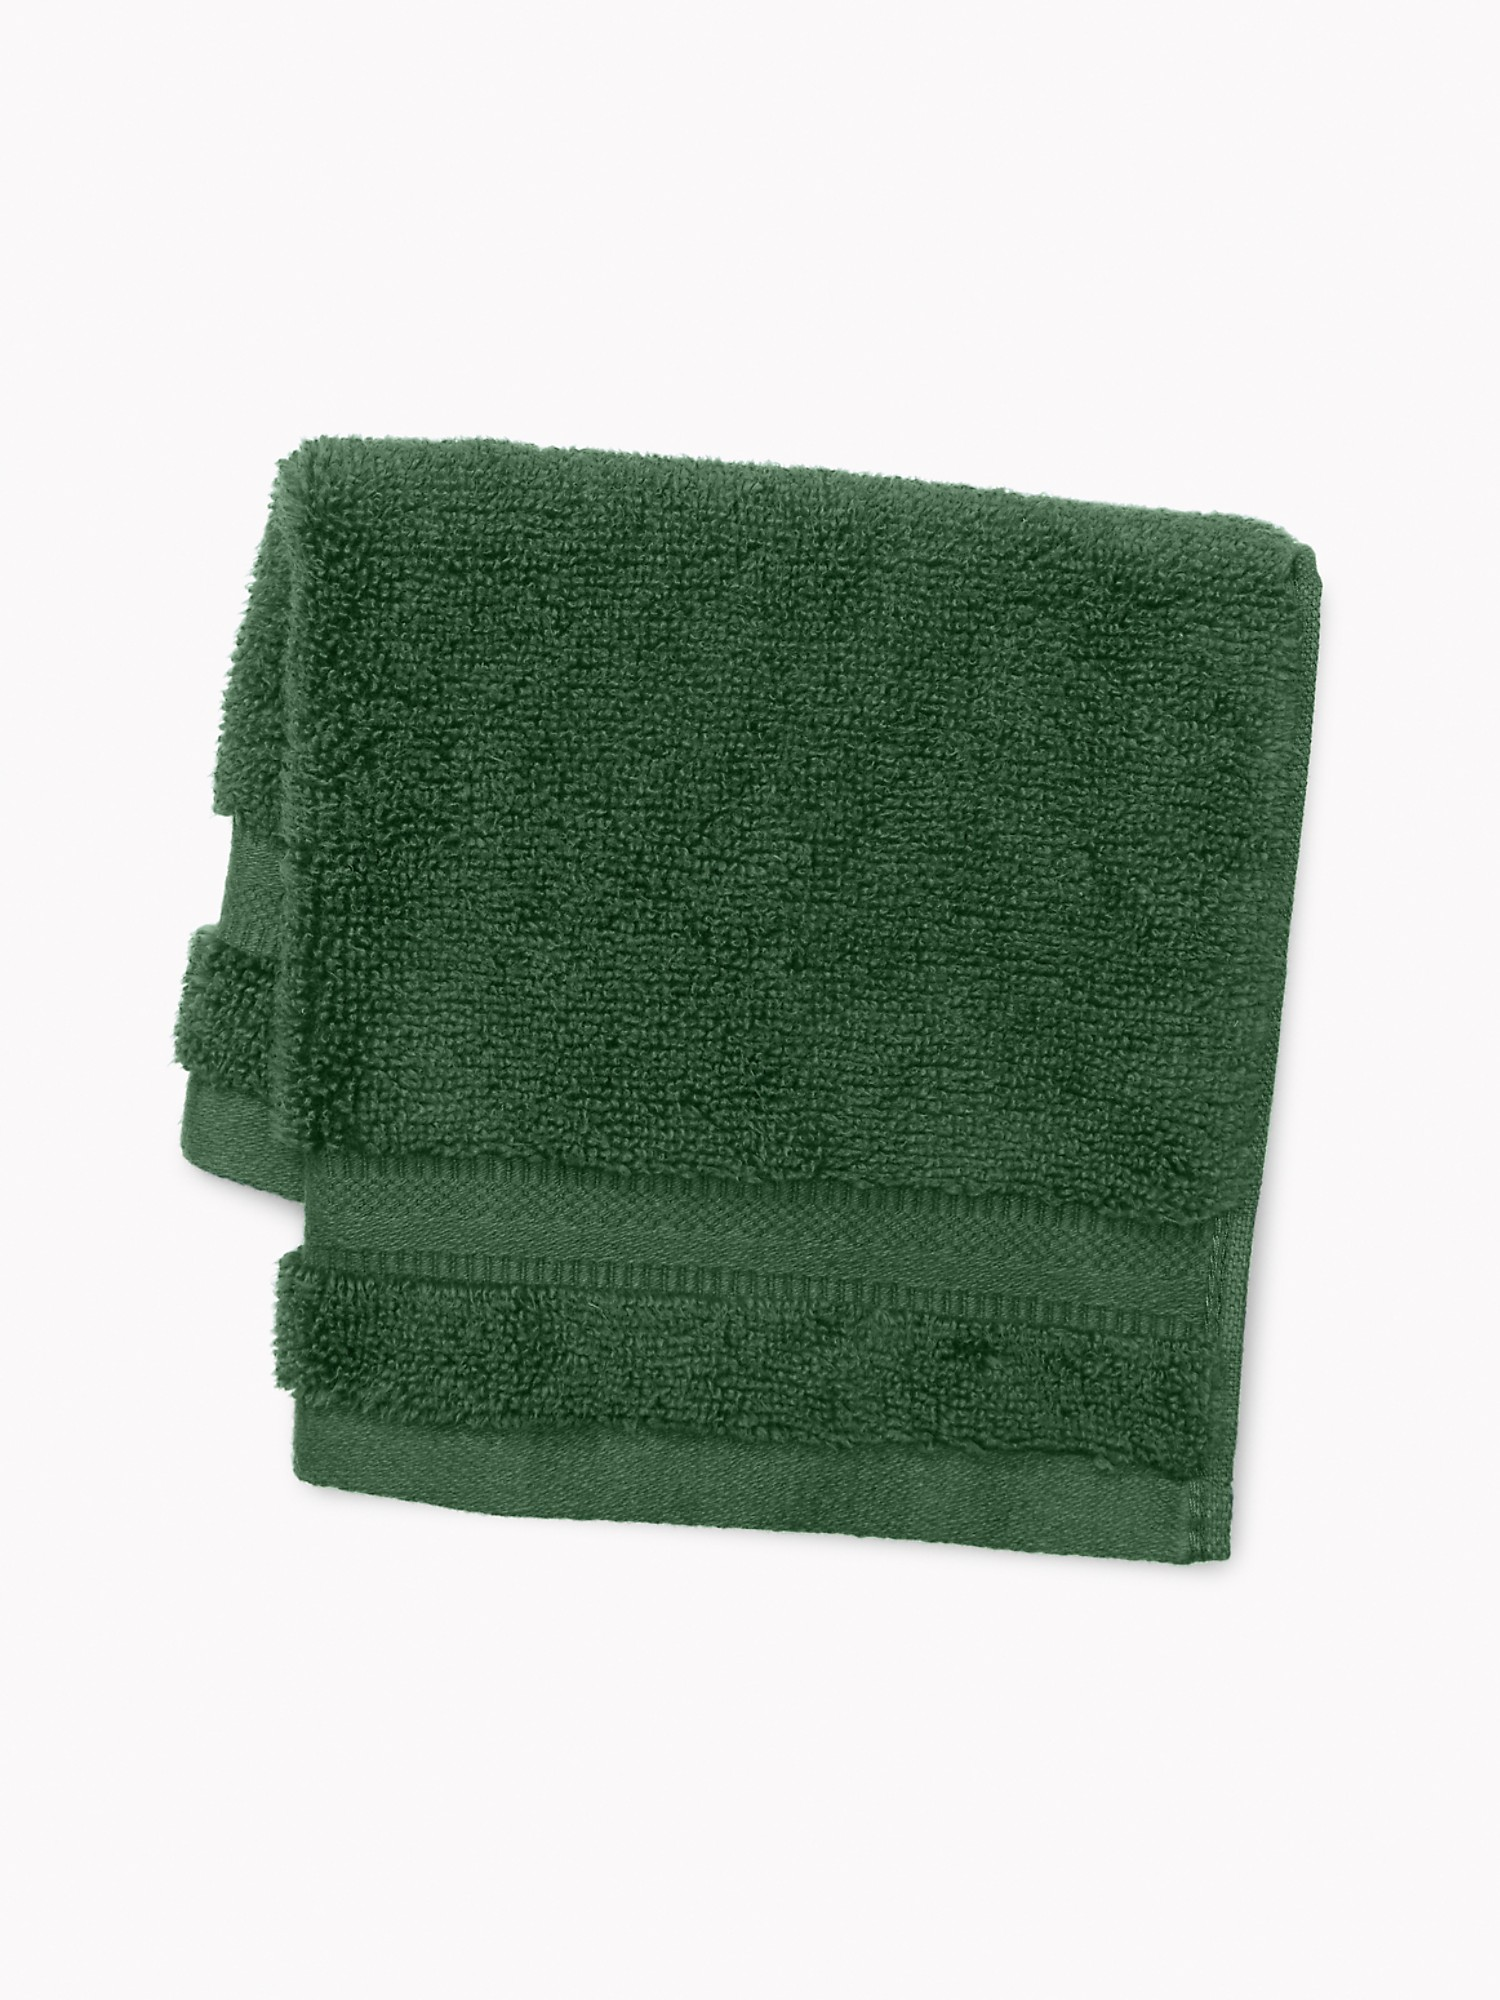 TOMMY HILFIGER Signature Solid Washcloth in Pine Needle